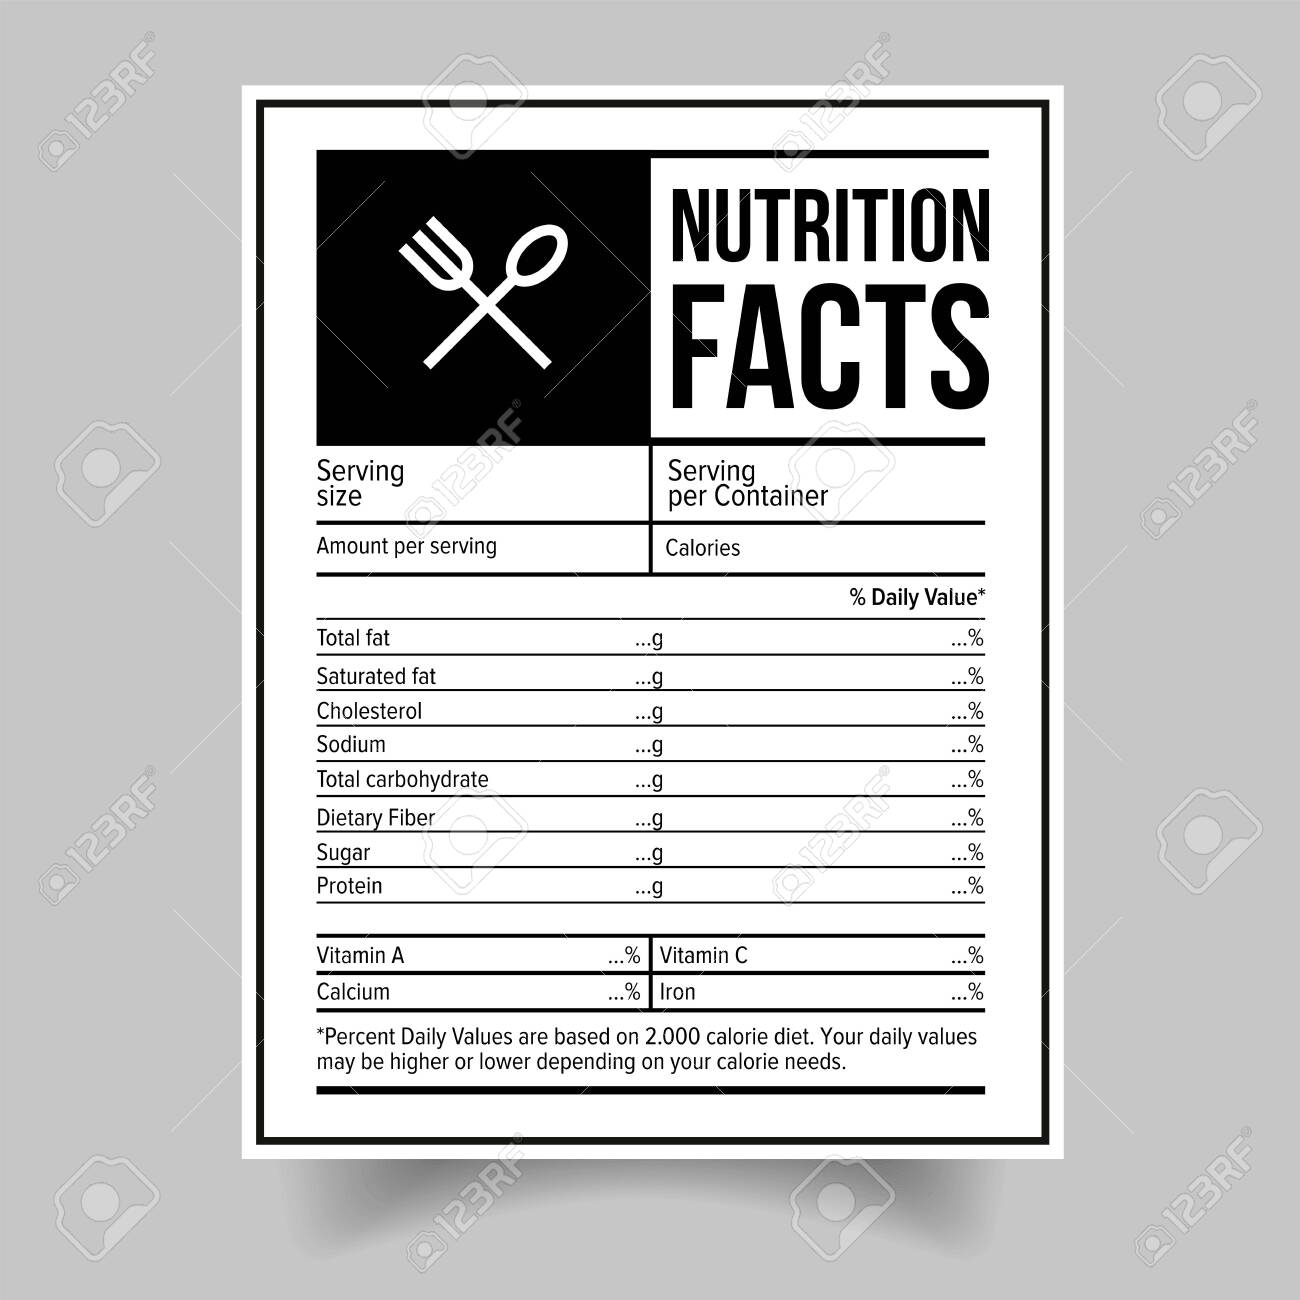 Nutrition Facts food label sticker - 139620739